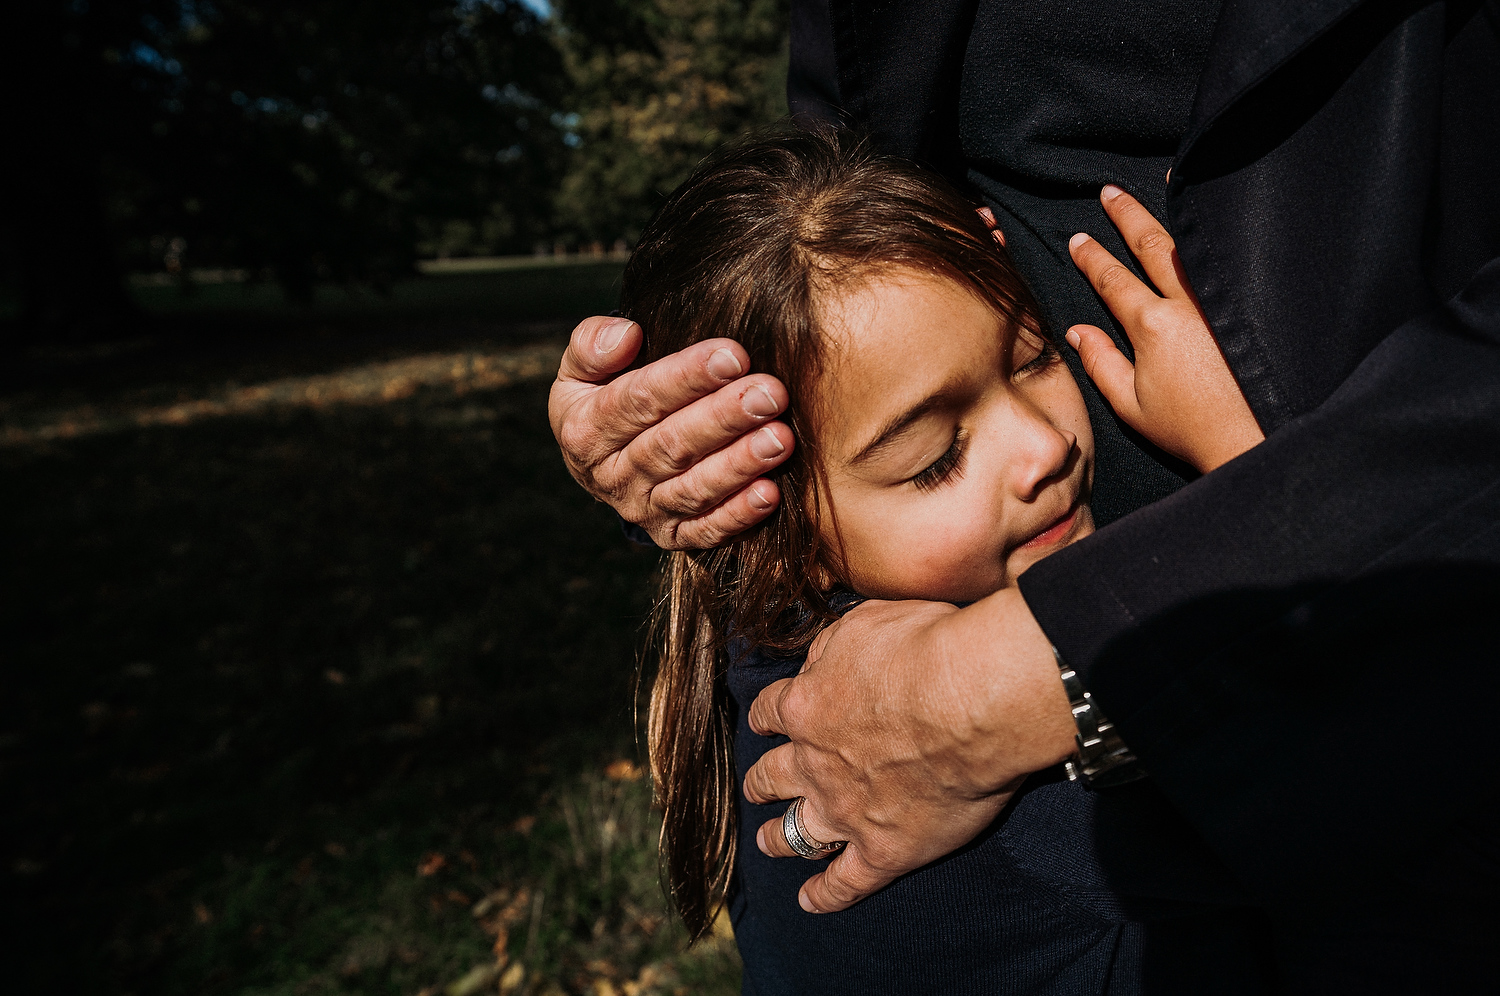 BOOKING A FAMILY PHOTO SESSION CLOSE UP CHILD'S DAUGHTER HEAD BEING HELD IN EMBRACE BY MOTHER